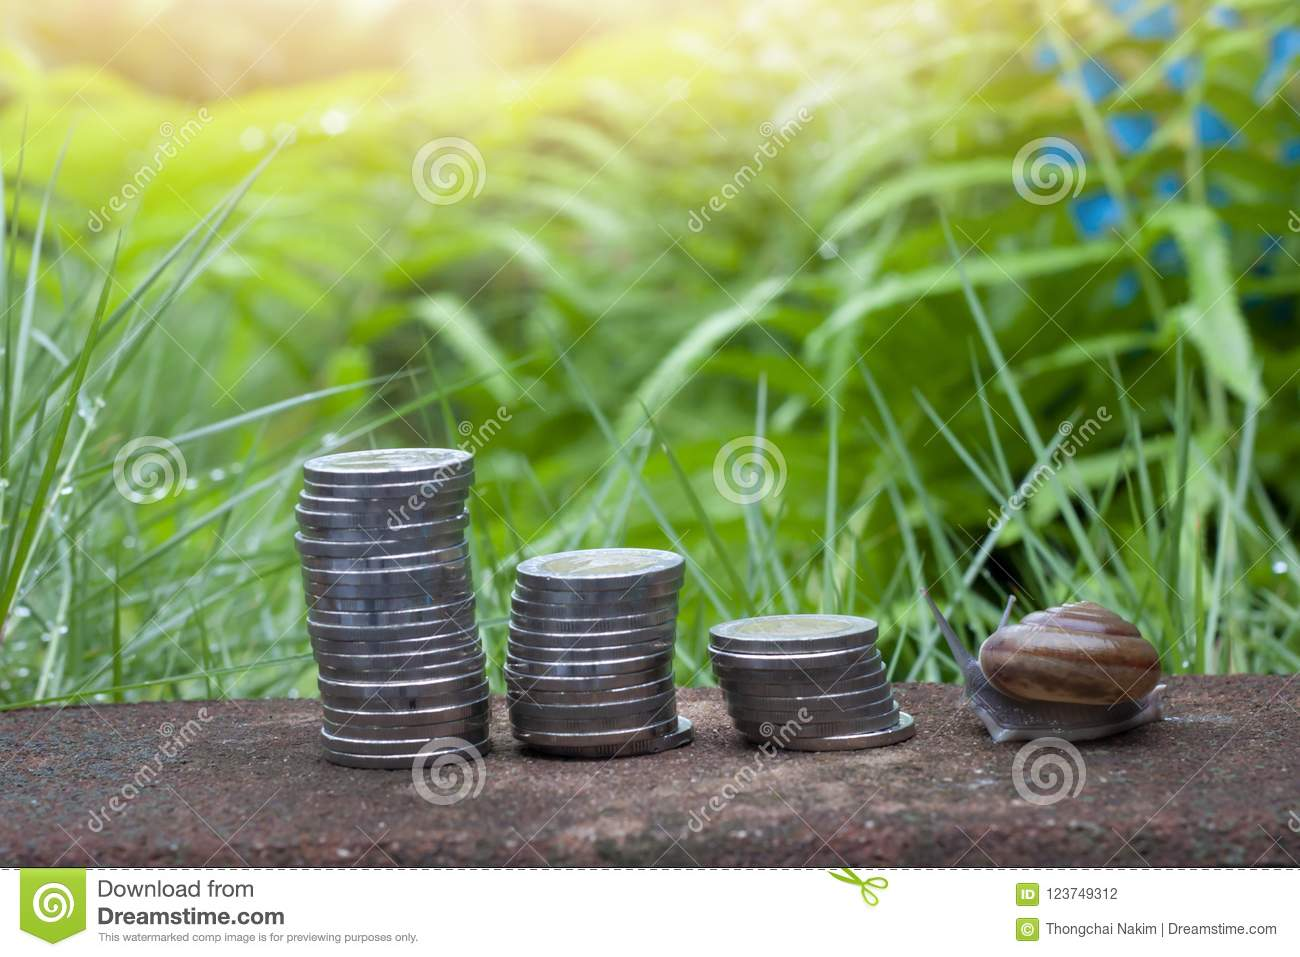 Financial of money and snail.